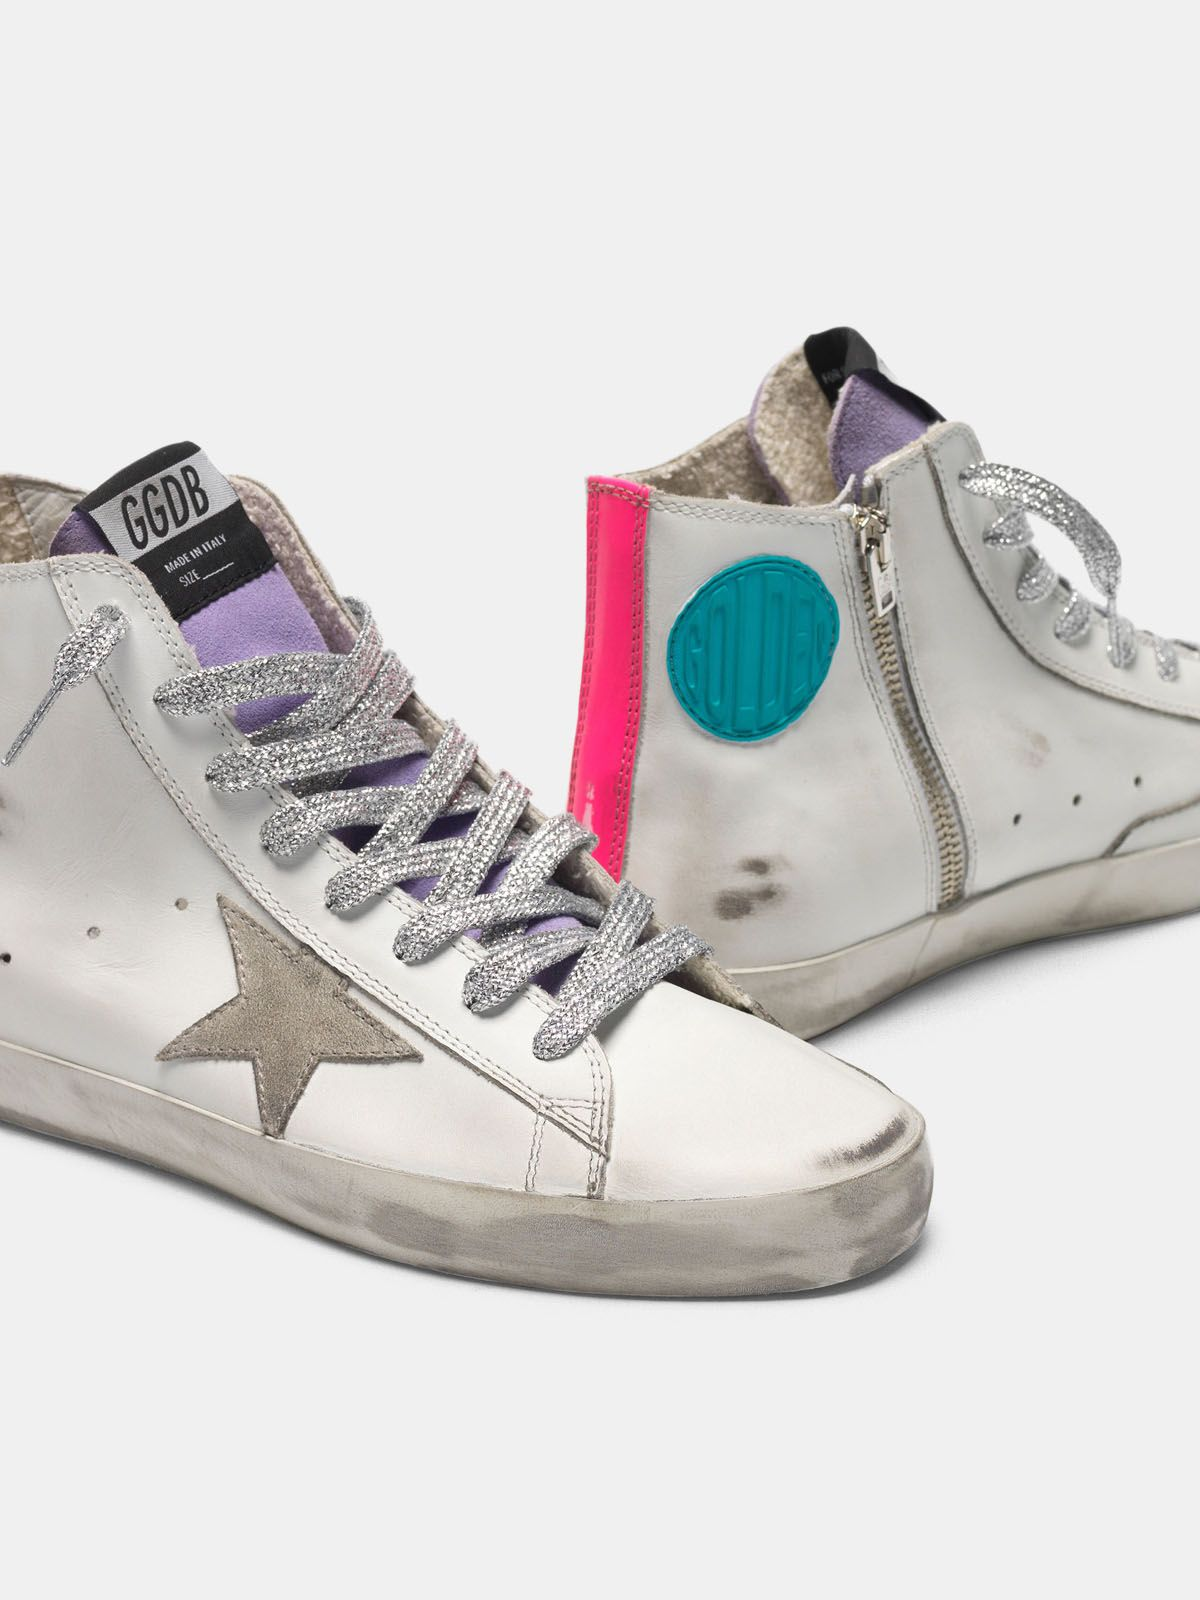 Golden Goose - Sneakers Francy bianche in pelle con bande fuxia   in